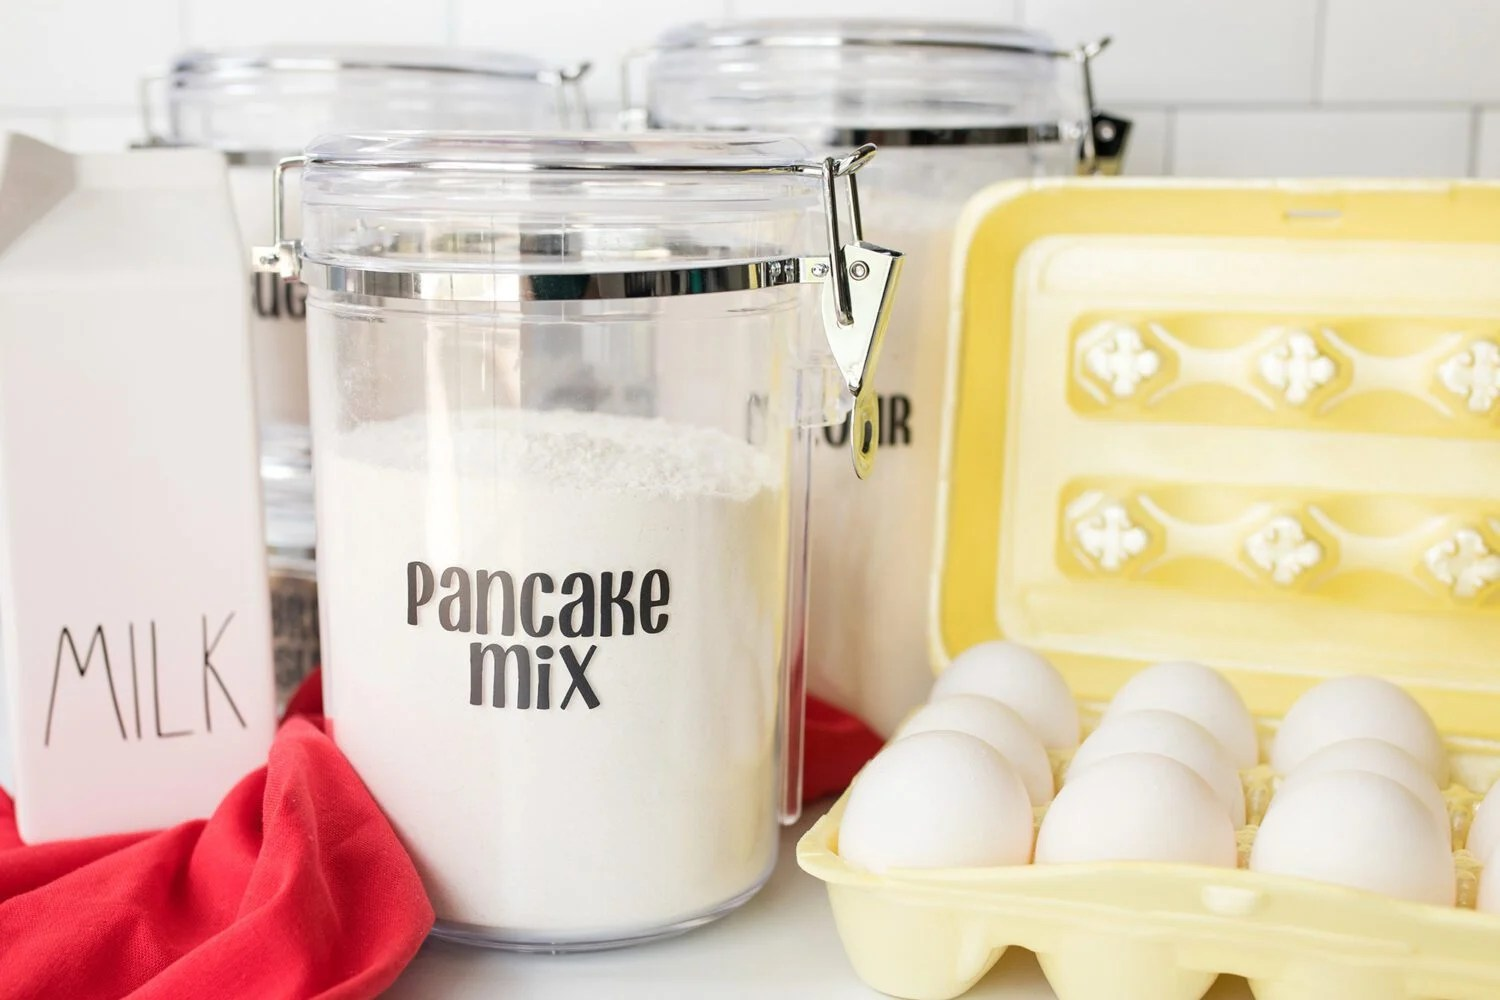 pancake mix in a container next to eggs